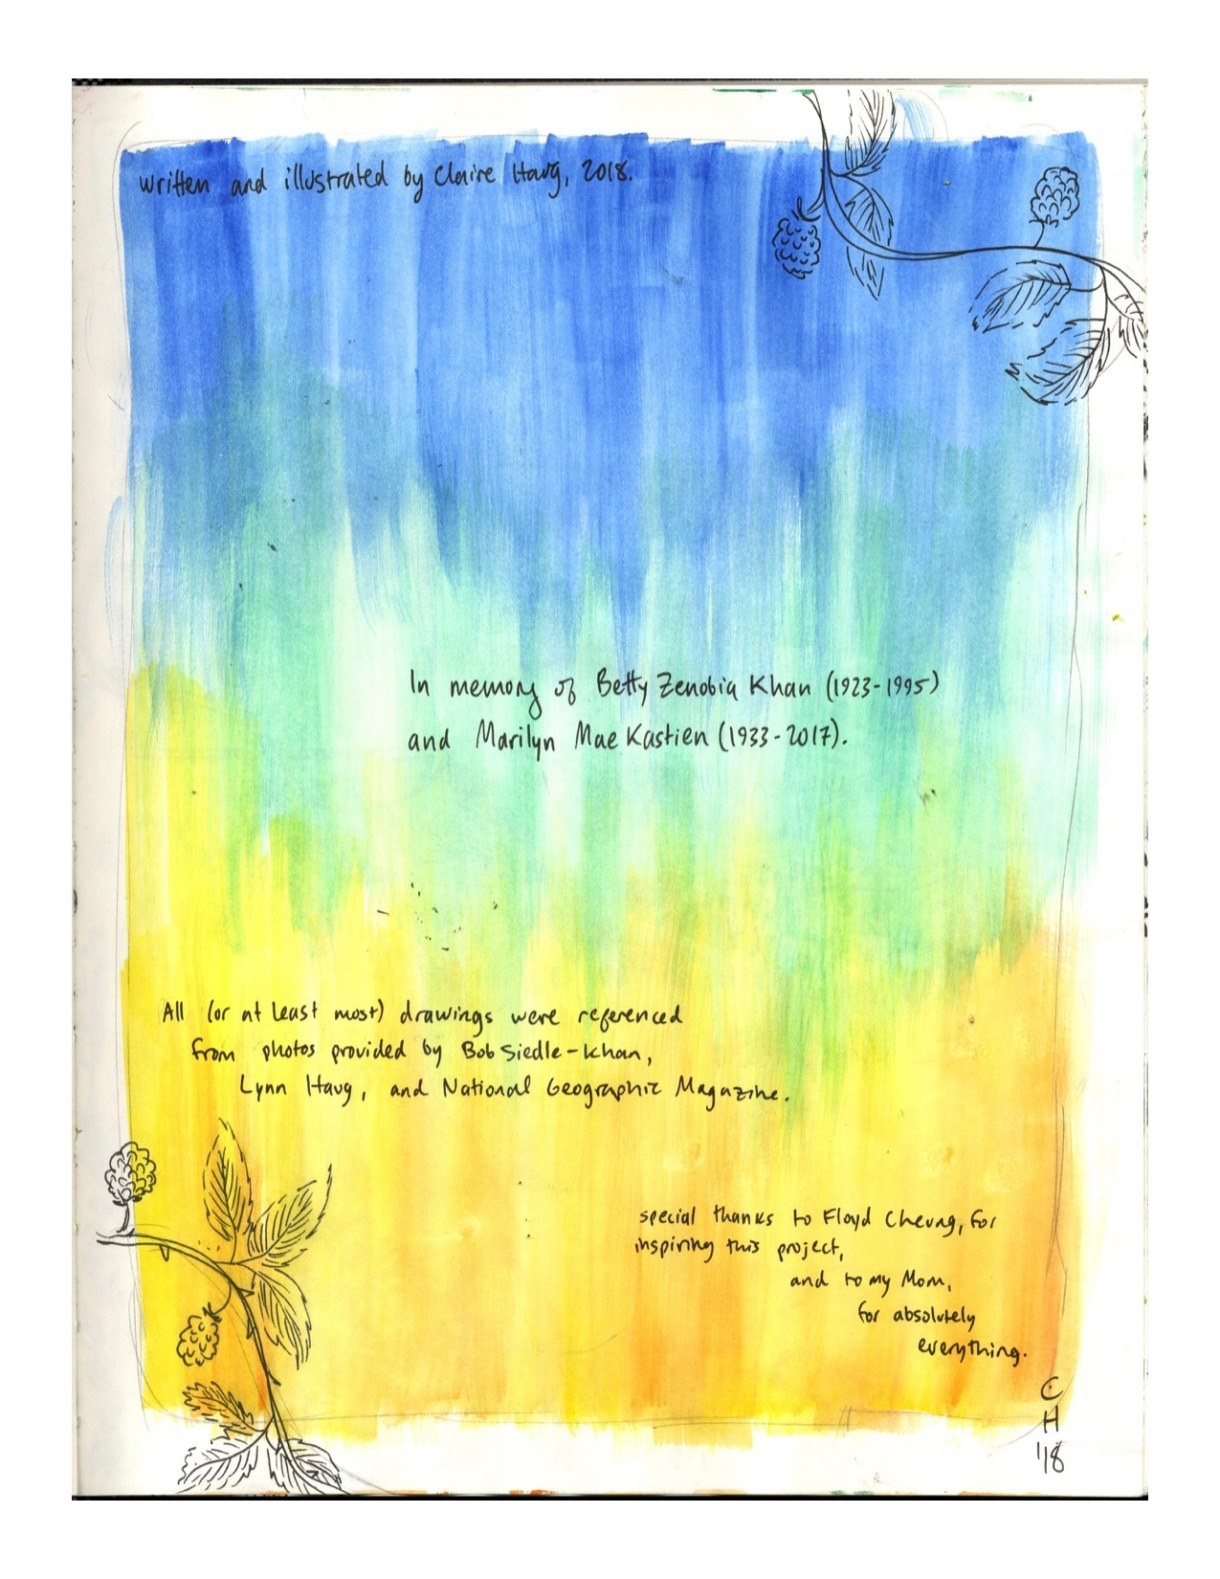 Written and illustrated by Claire Haug, 2018. In memory of Betty Zenobia Khan (1923-1995) and Marilyn Mae Kastien (1933-2017). All (or at least most) drawings were referenced from photos provided by Bob Siedle-Khan, Lynn Haug, and National Geographic Magazine. Special thanks to Floyd Cheng, for inspiring this project, and to my Mom, for absolutely everything.